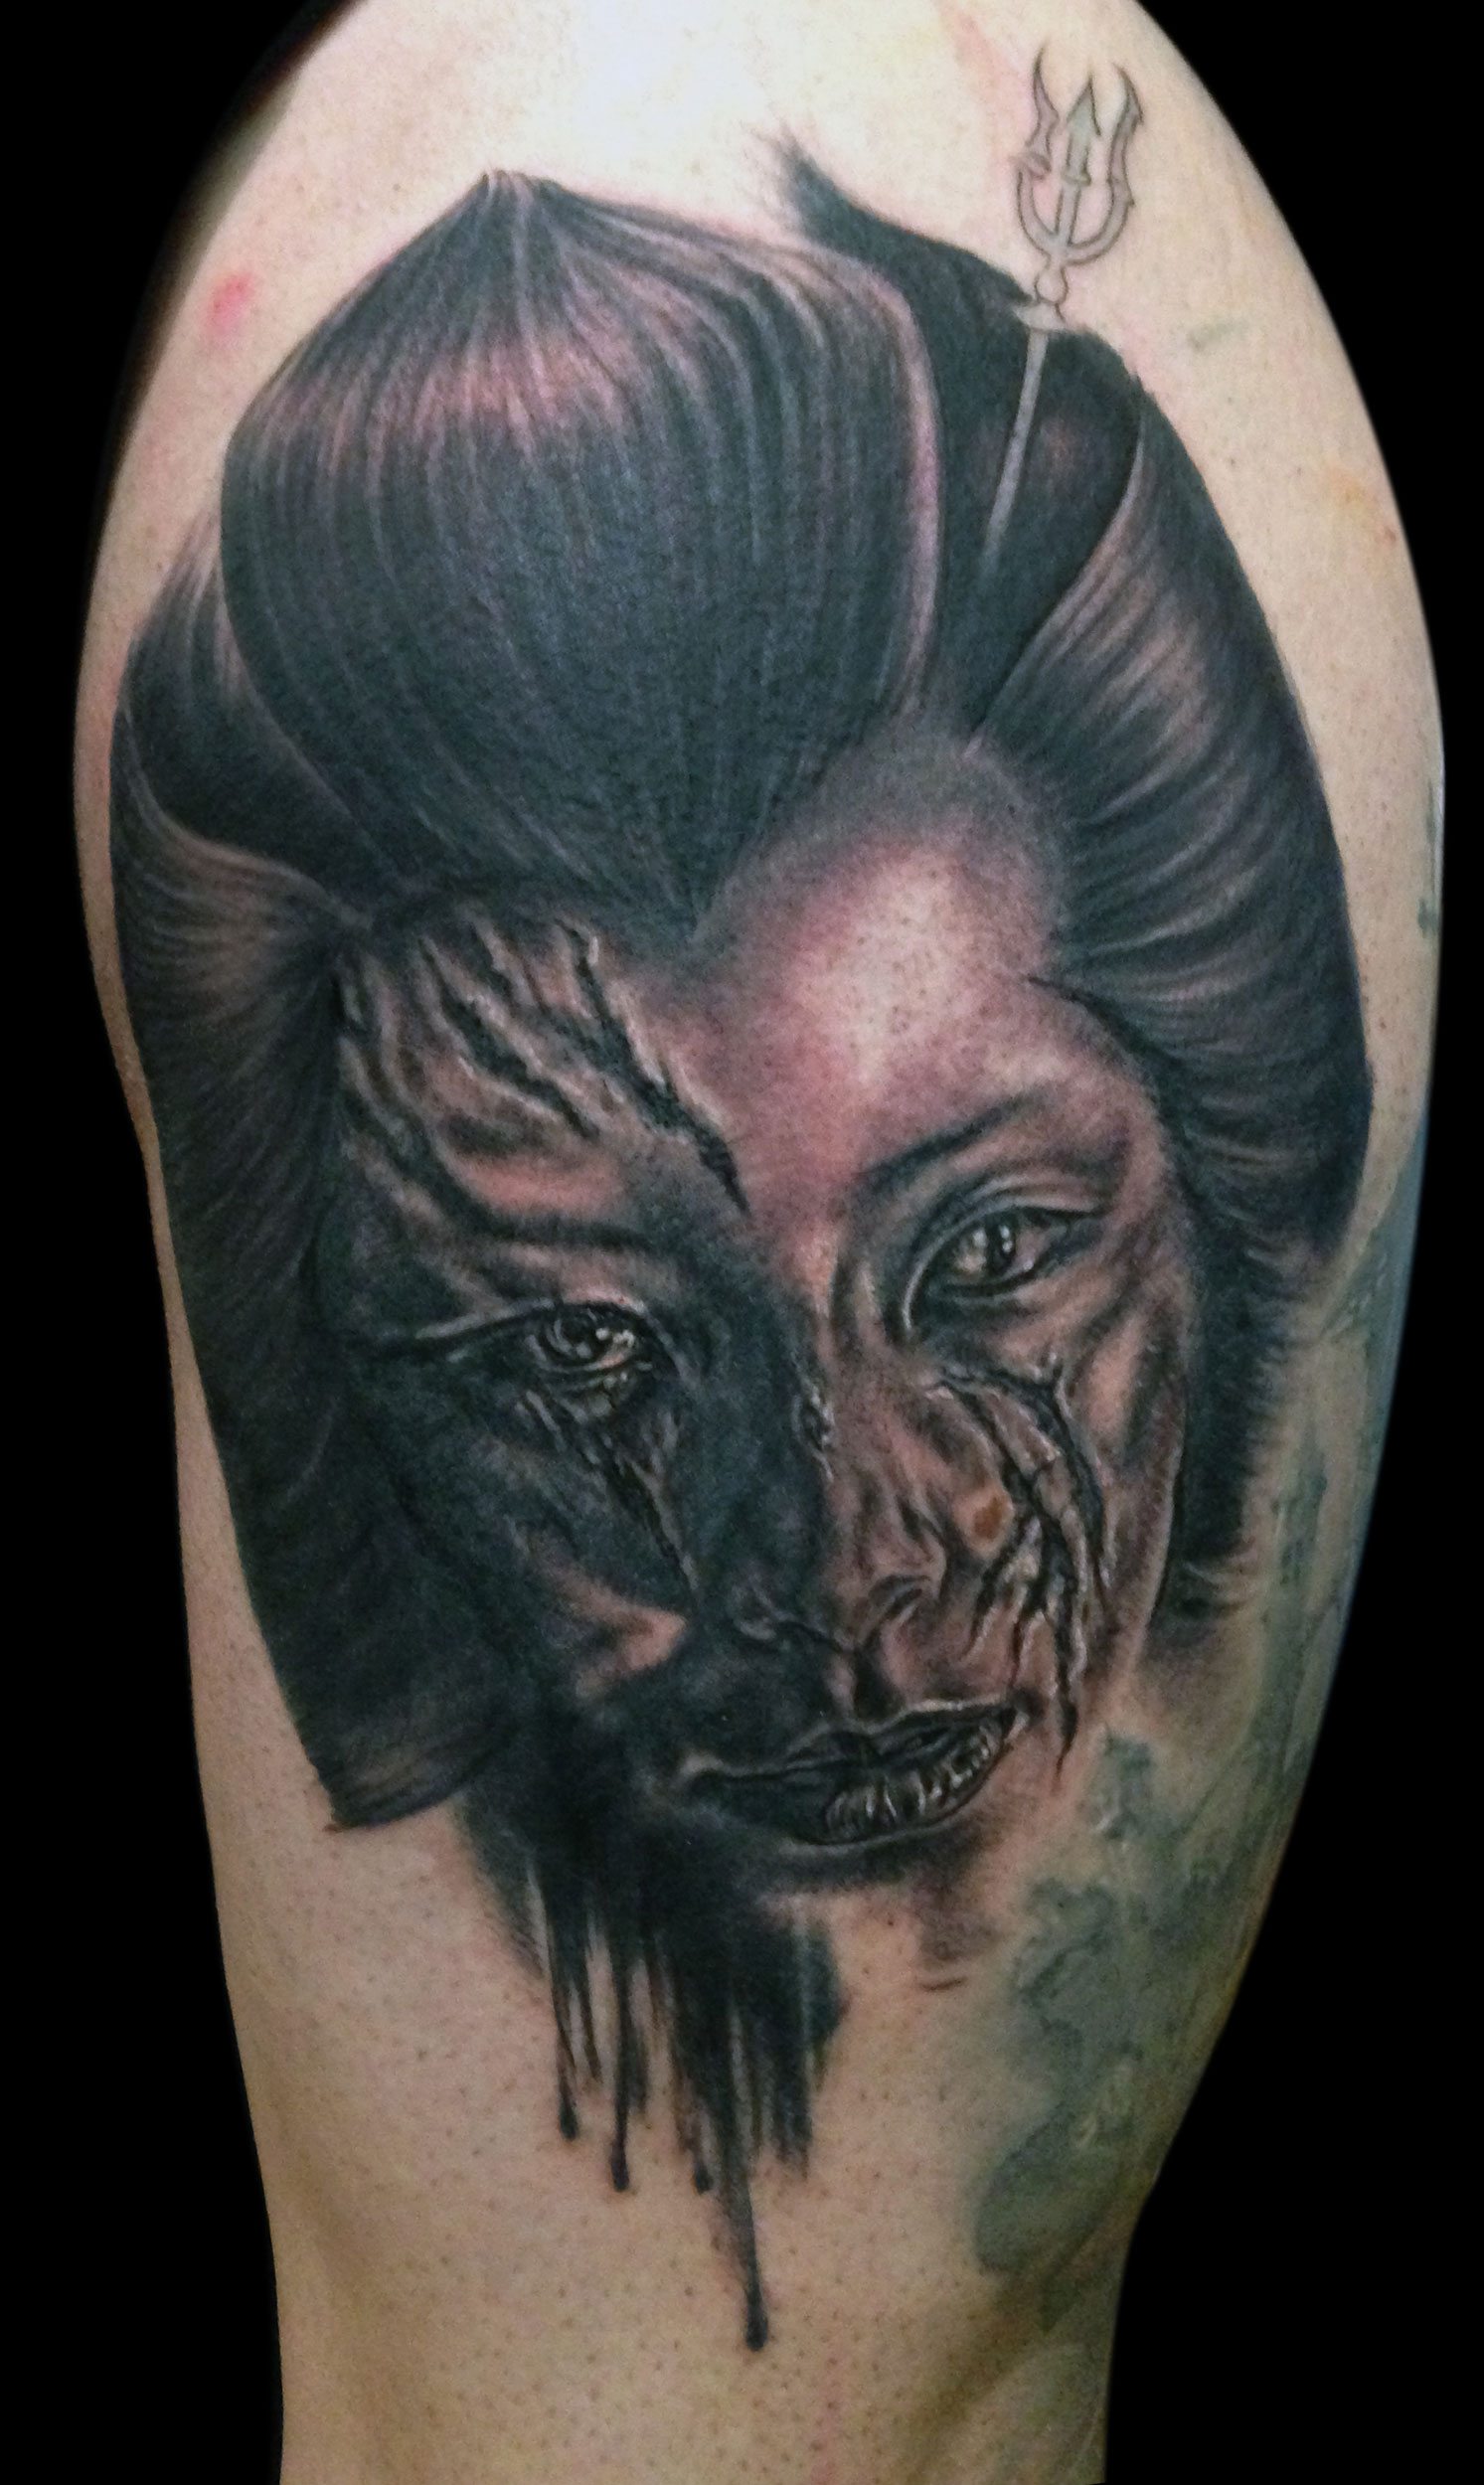 Back and Grey Slashed Geisha Horror Portrait Tattoo, (fresh, first session) Zwickau Tattoo Expo, Germany